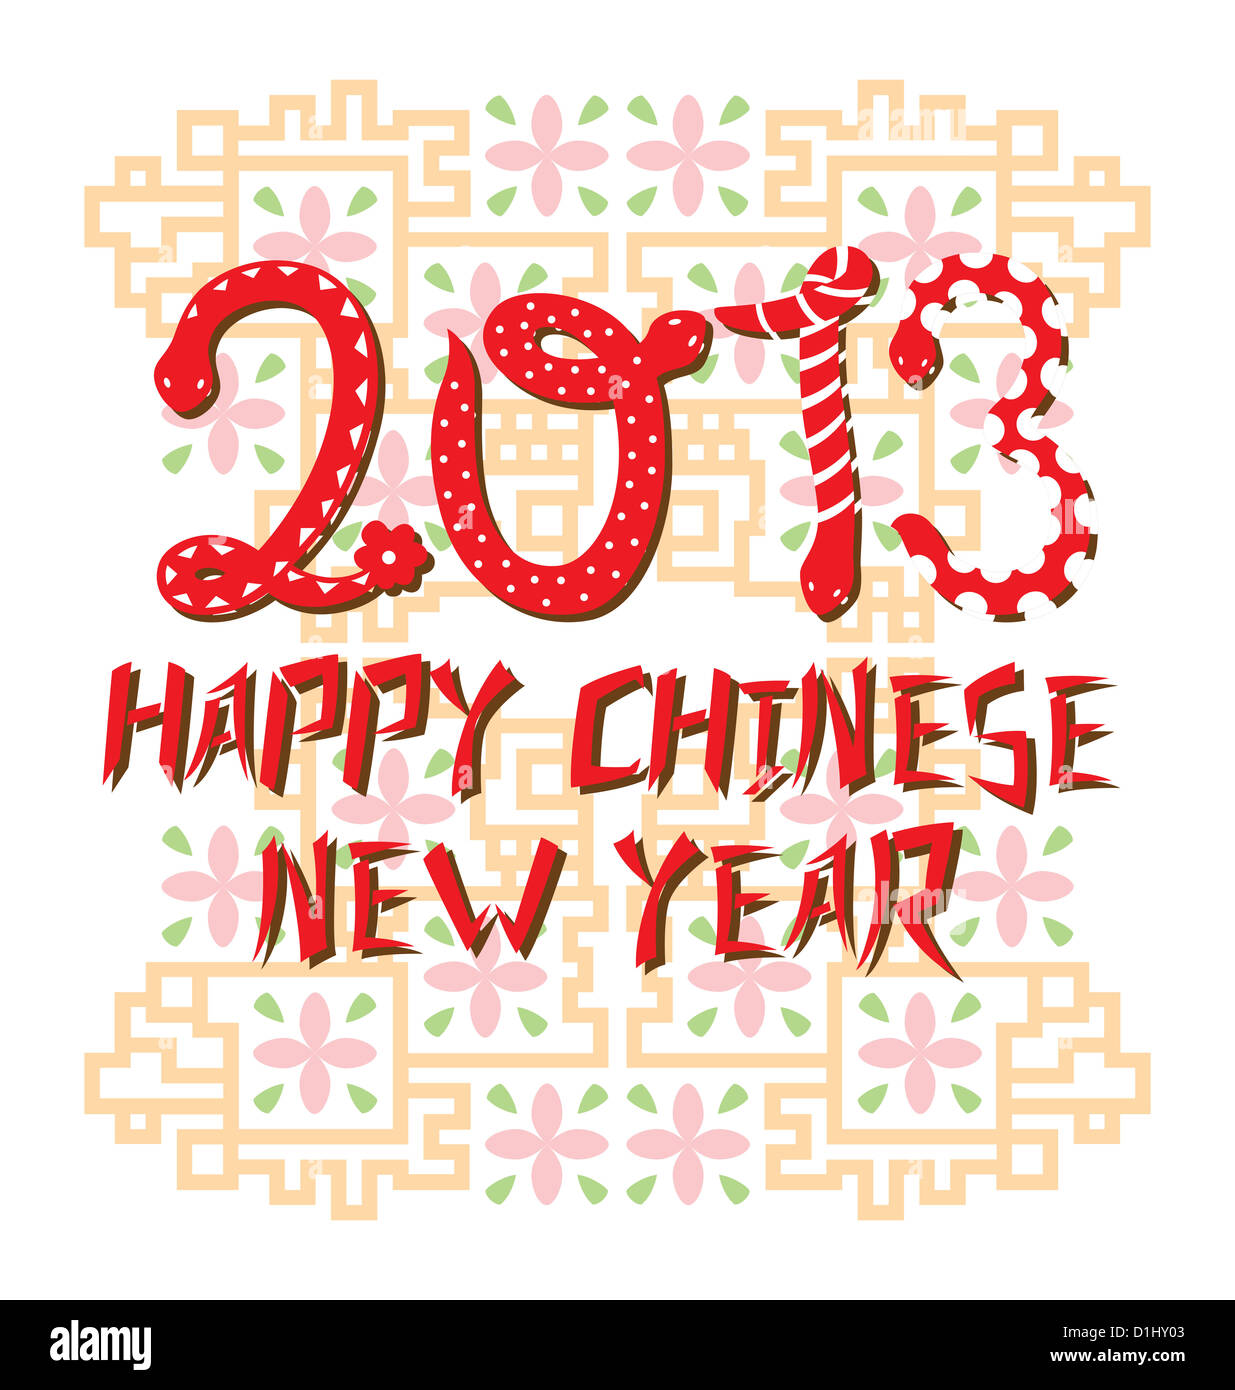 Typography design of snakes creating the number 2013 to celebrate the Chinese Snake Year with traditional Chinese - Stock Image